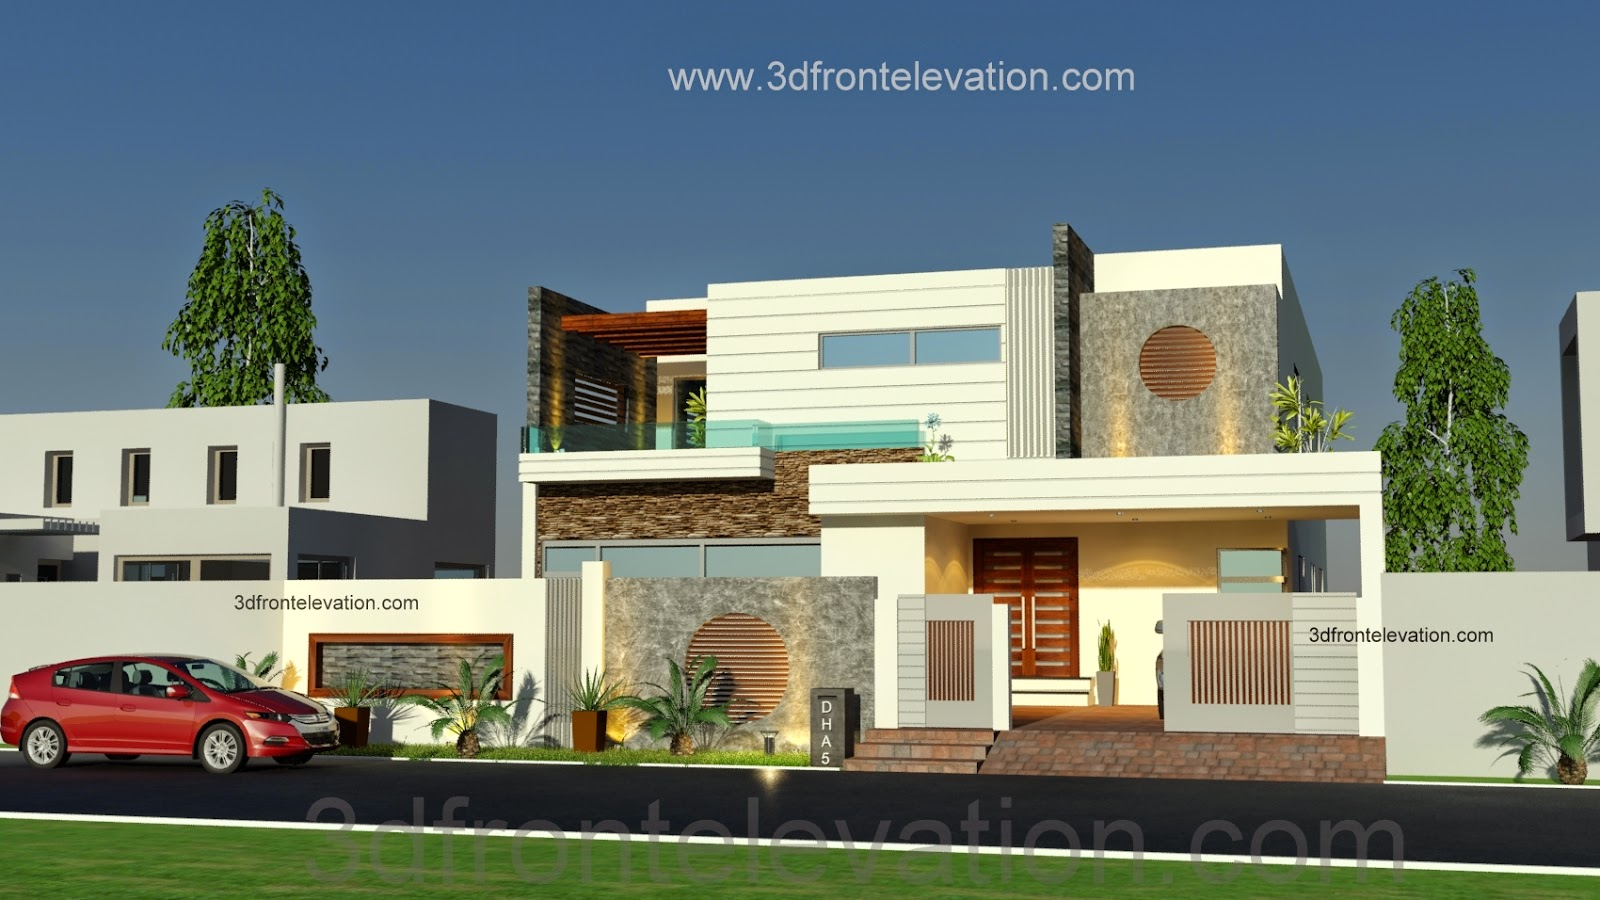 3d Front Elevation Of Houses In Dubai : D front elevation pakistan